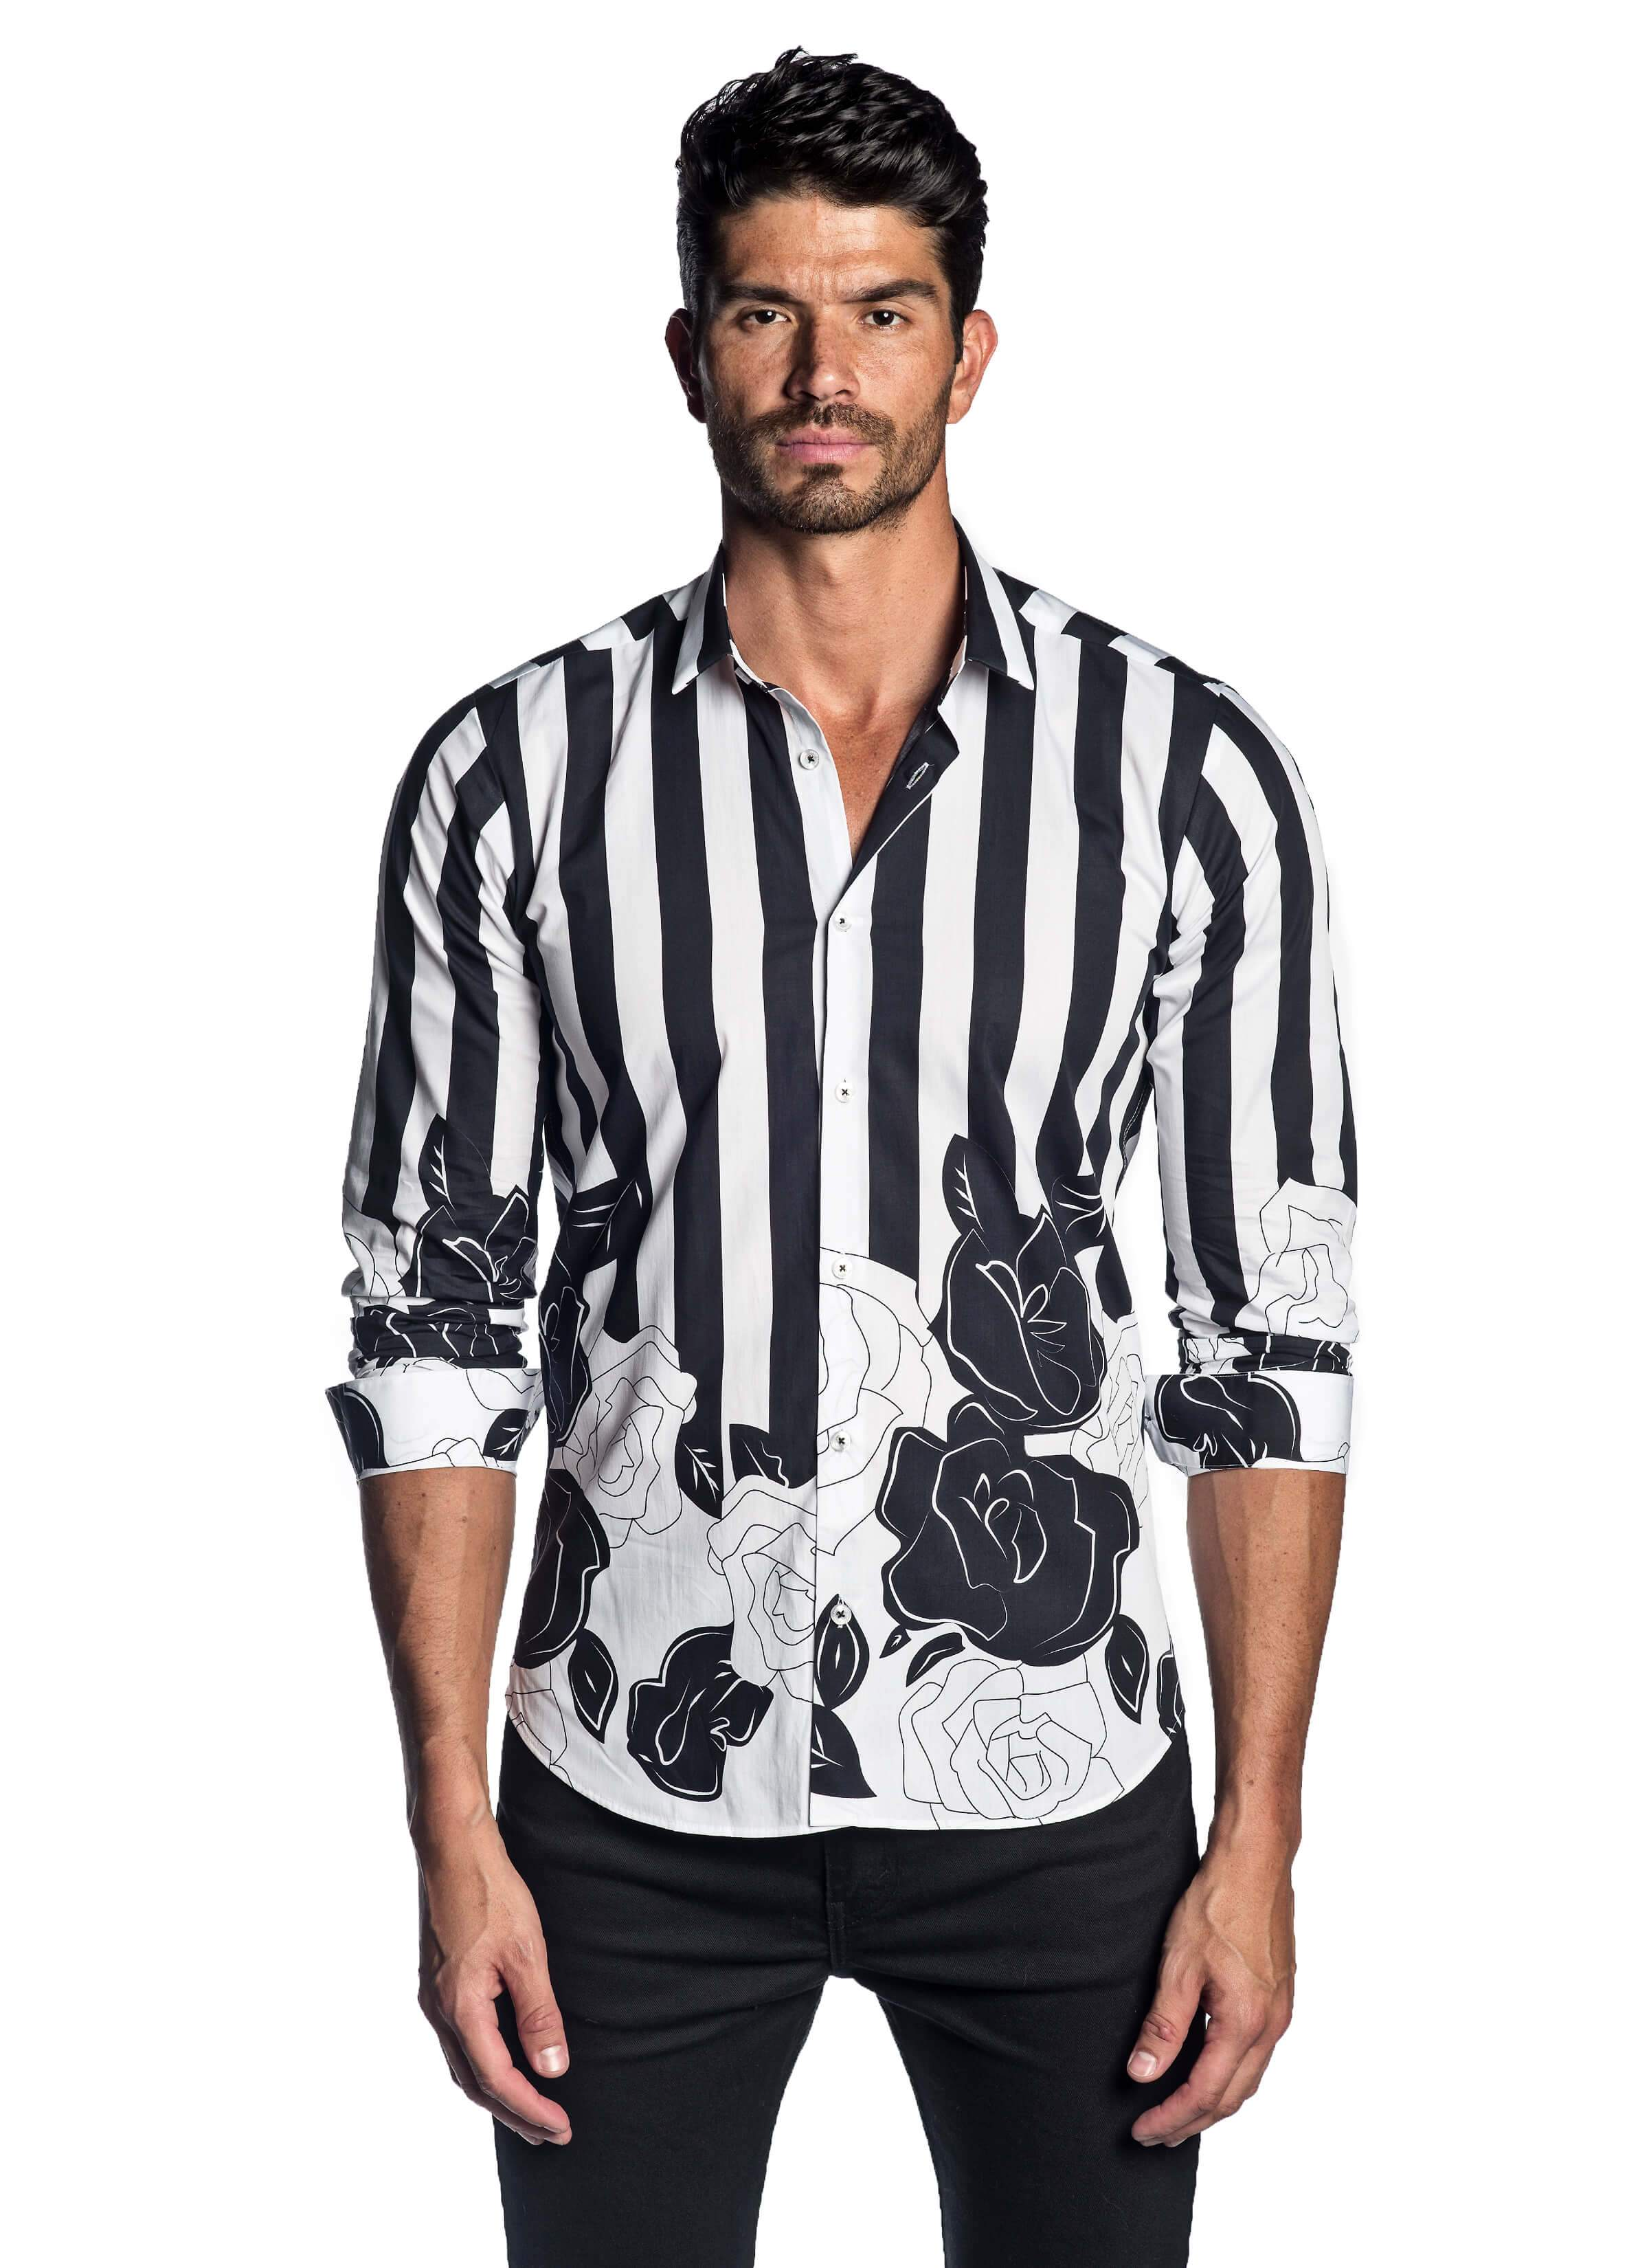 White Black Printed Floral Shirt for Men - Front - AH-T-2058 - Jared Lang